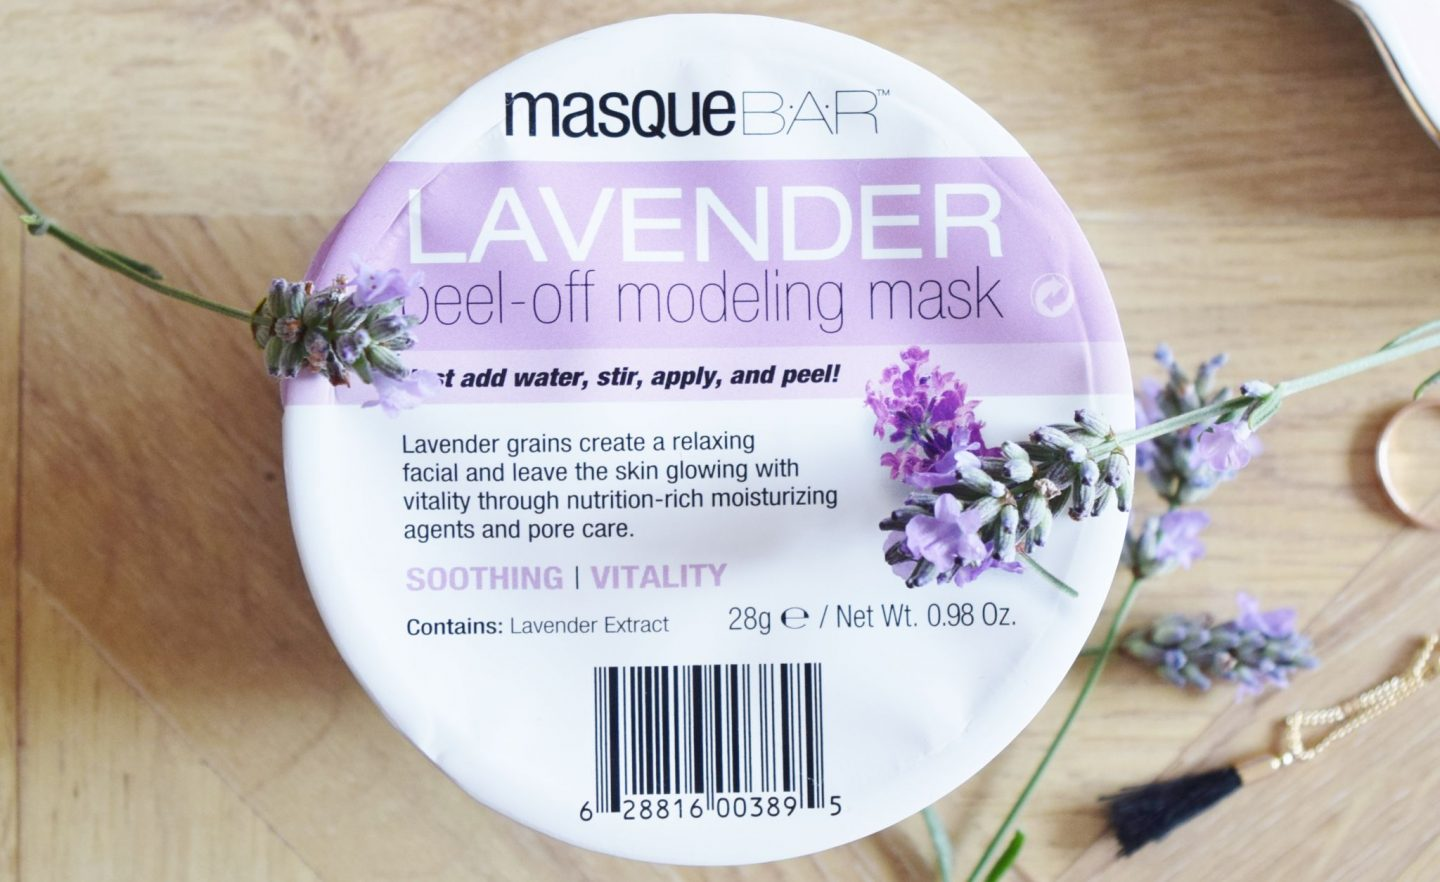 Masque Bar Lavender Peel-Off Modeling Mask